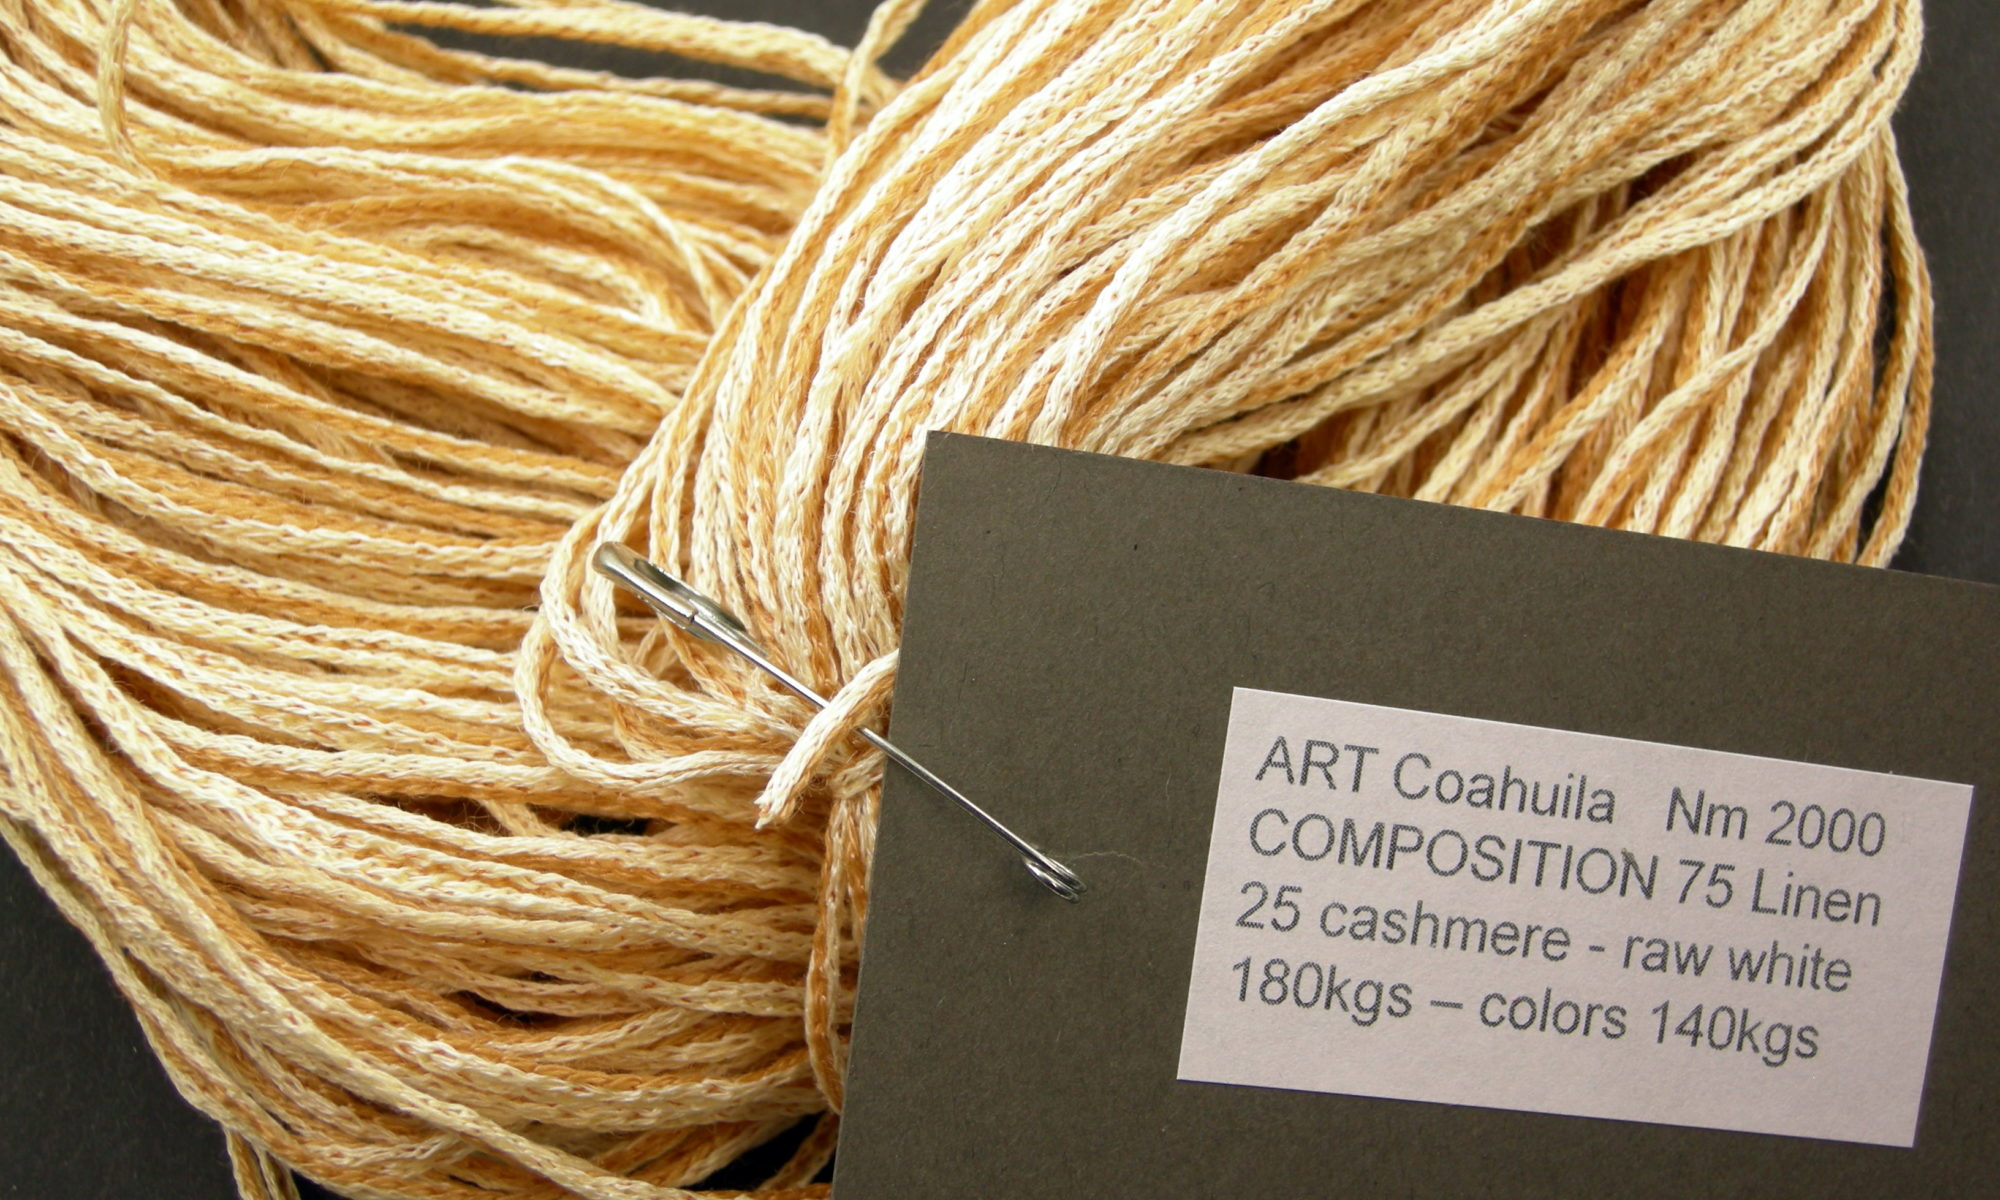 ART Coahuila Nm 2000 COMPOSITION 75 Linen 25 cashmere - raw white 180kgs – colors 140kgs